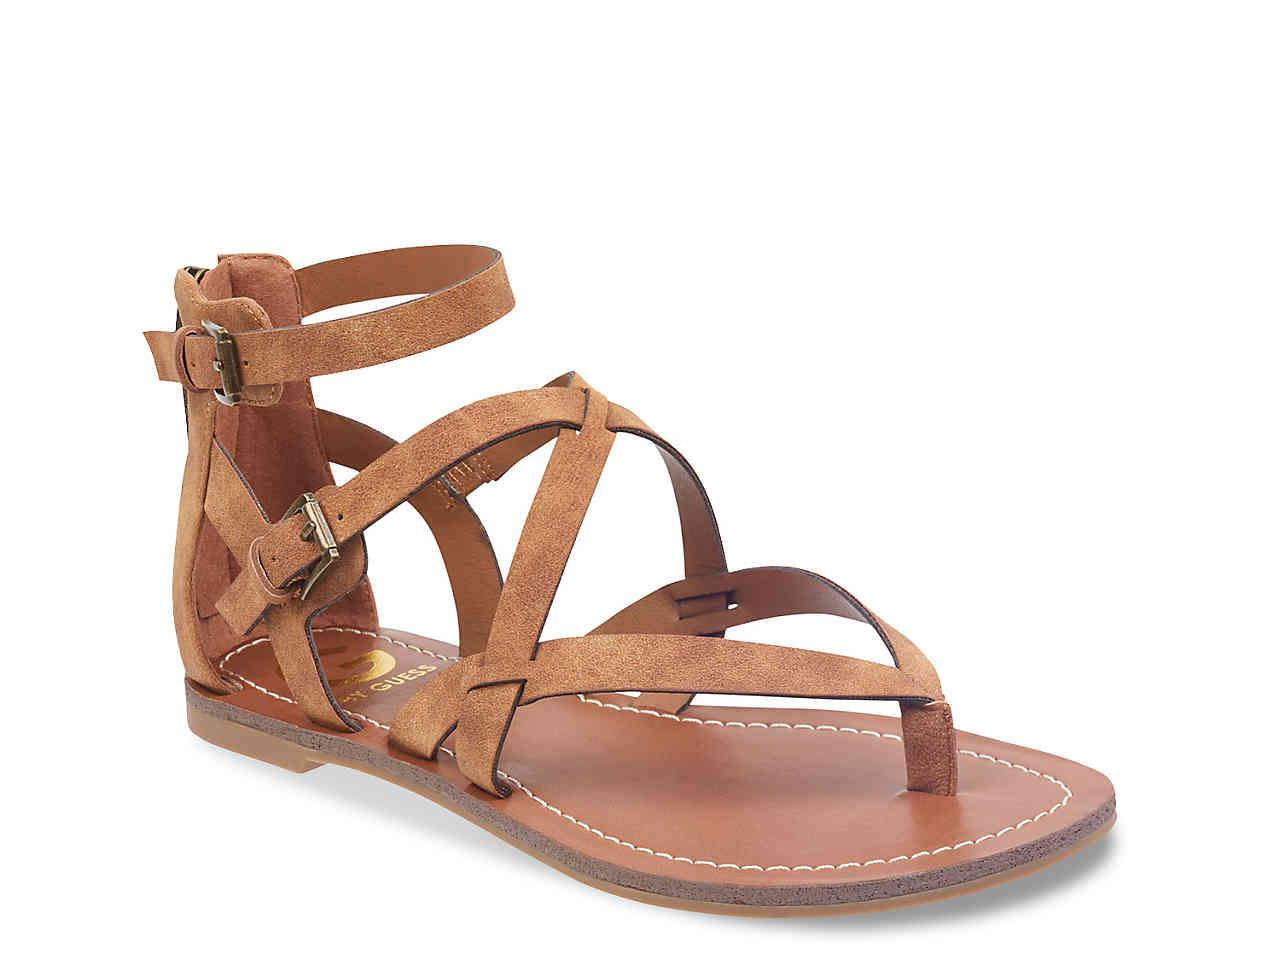 eeaddce7a44e Gallery. Previously sold at  DSW · Women s Gladiator Sandals ...